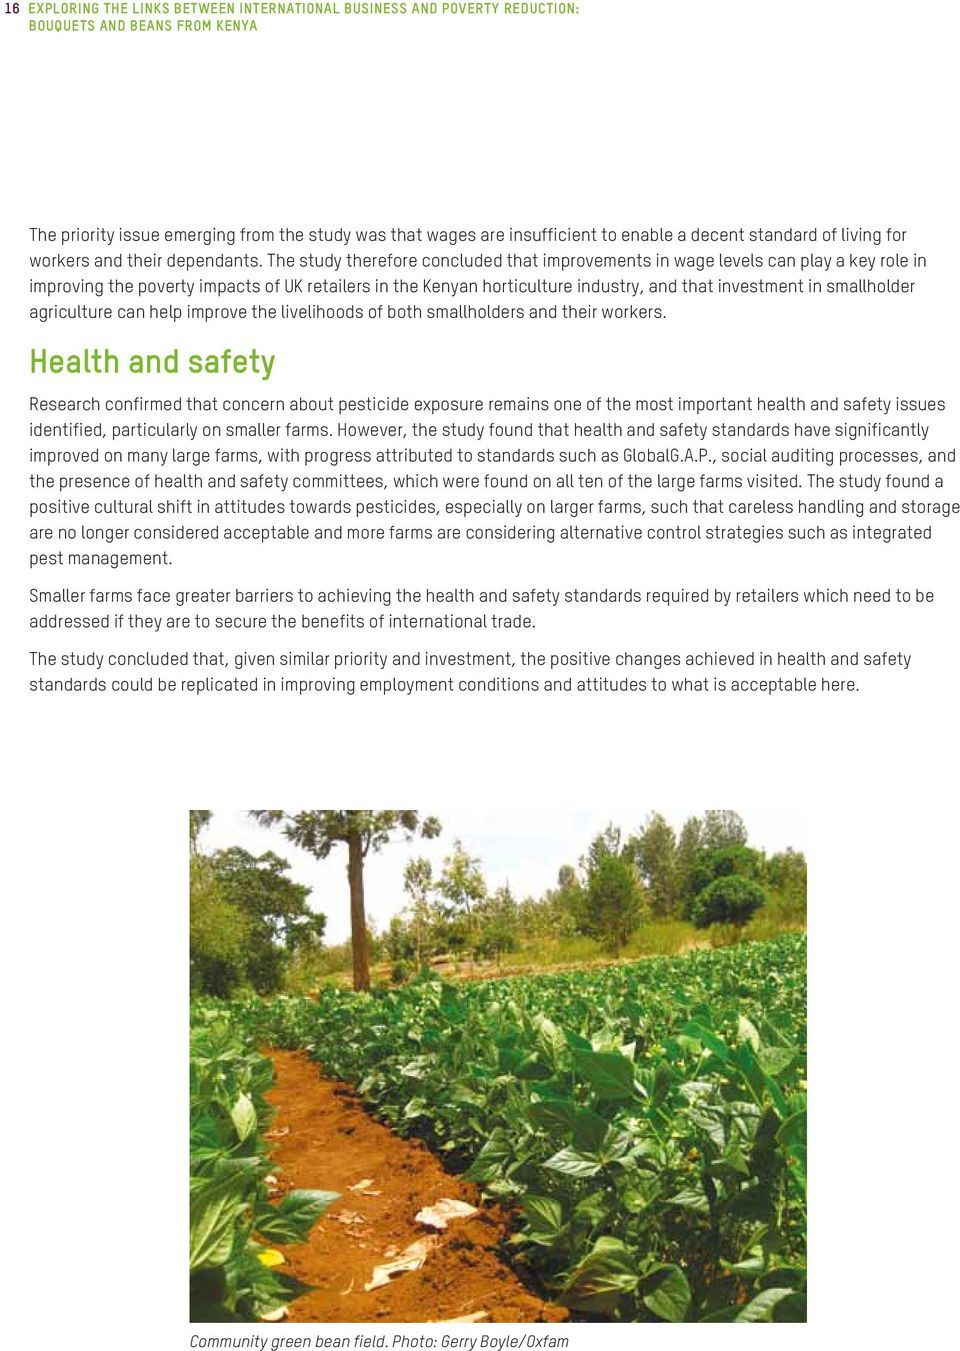 The study therefore concluded that improvements in wage levels can play a key role in improving the poverty impacts of UK retailers in the Kenyan horticulture industry, and that investment in